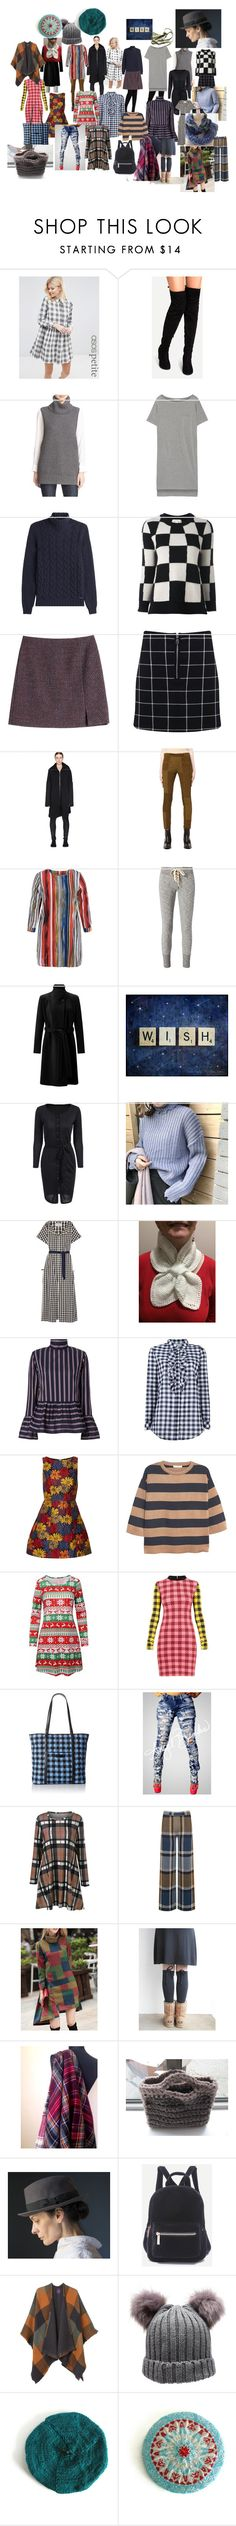 """""""wish list......................"""" by talma-vardi on Polyvore featuring ASOS, Autumn Cashmere, T By Alexander Wang, Woolrich, Marc Jacobs, Carven, Miss Selfridge, Lost & Found, Haider Ackermann and NSF"""